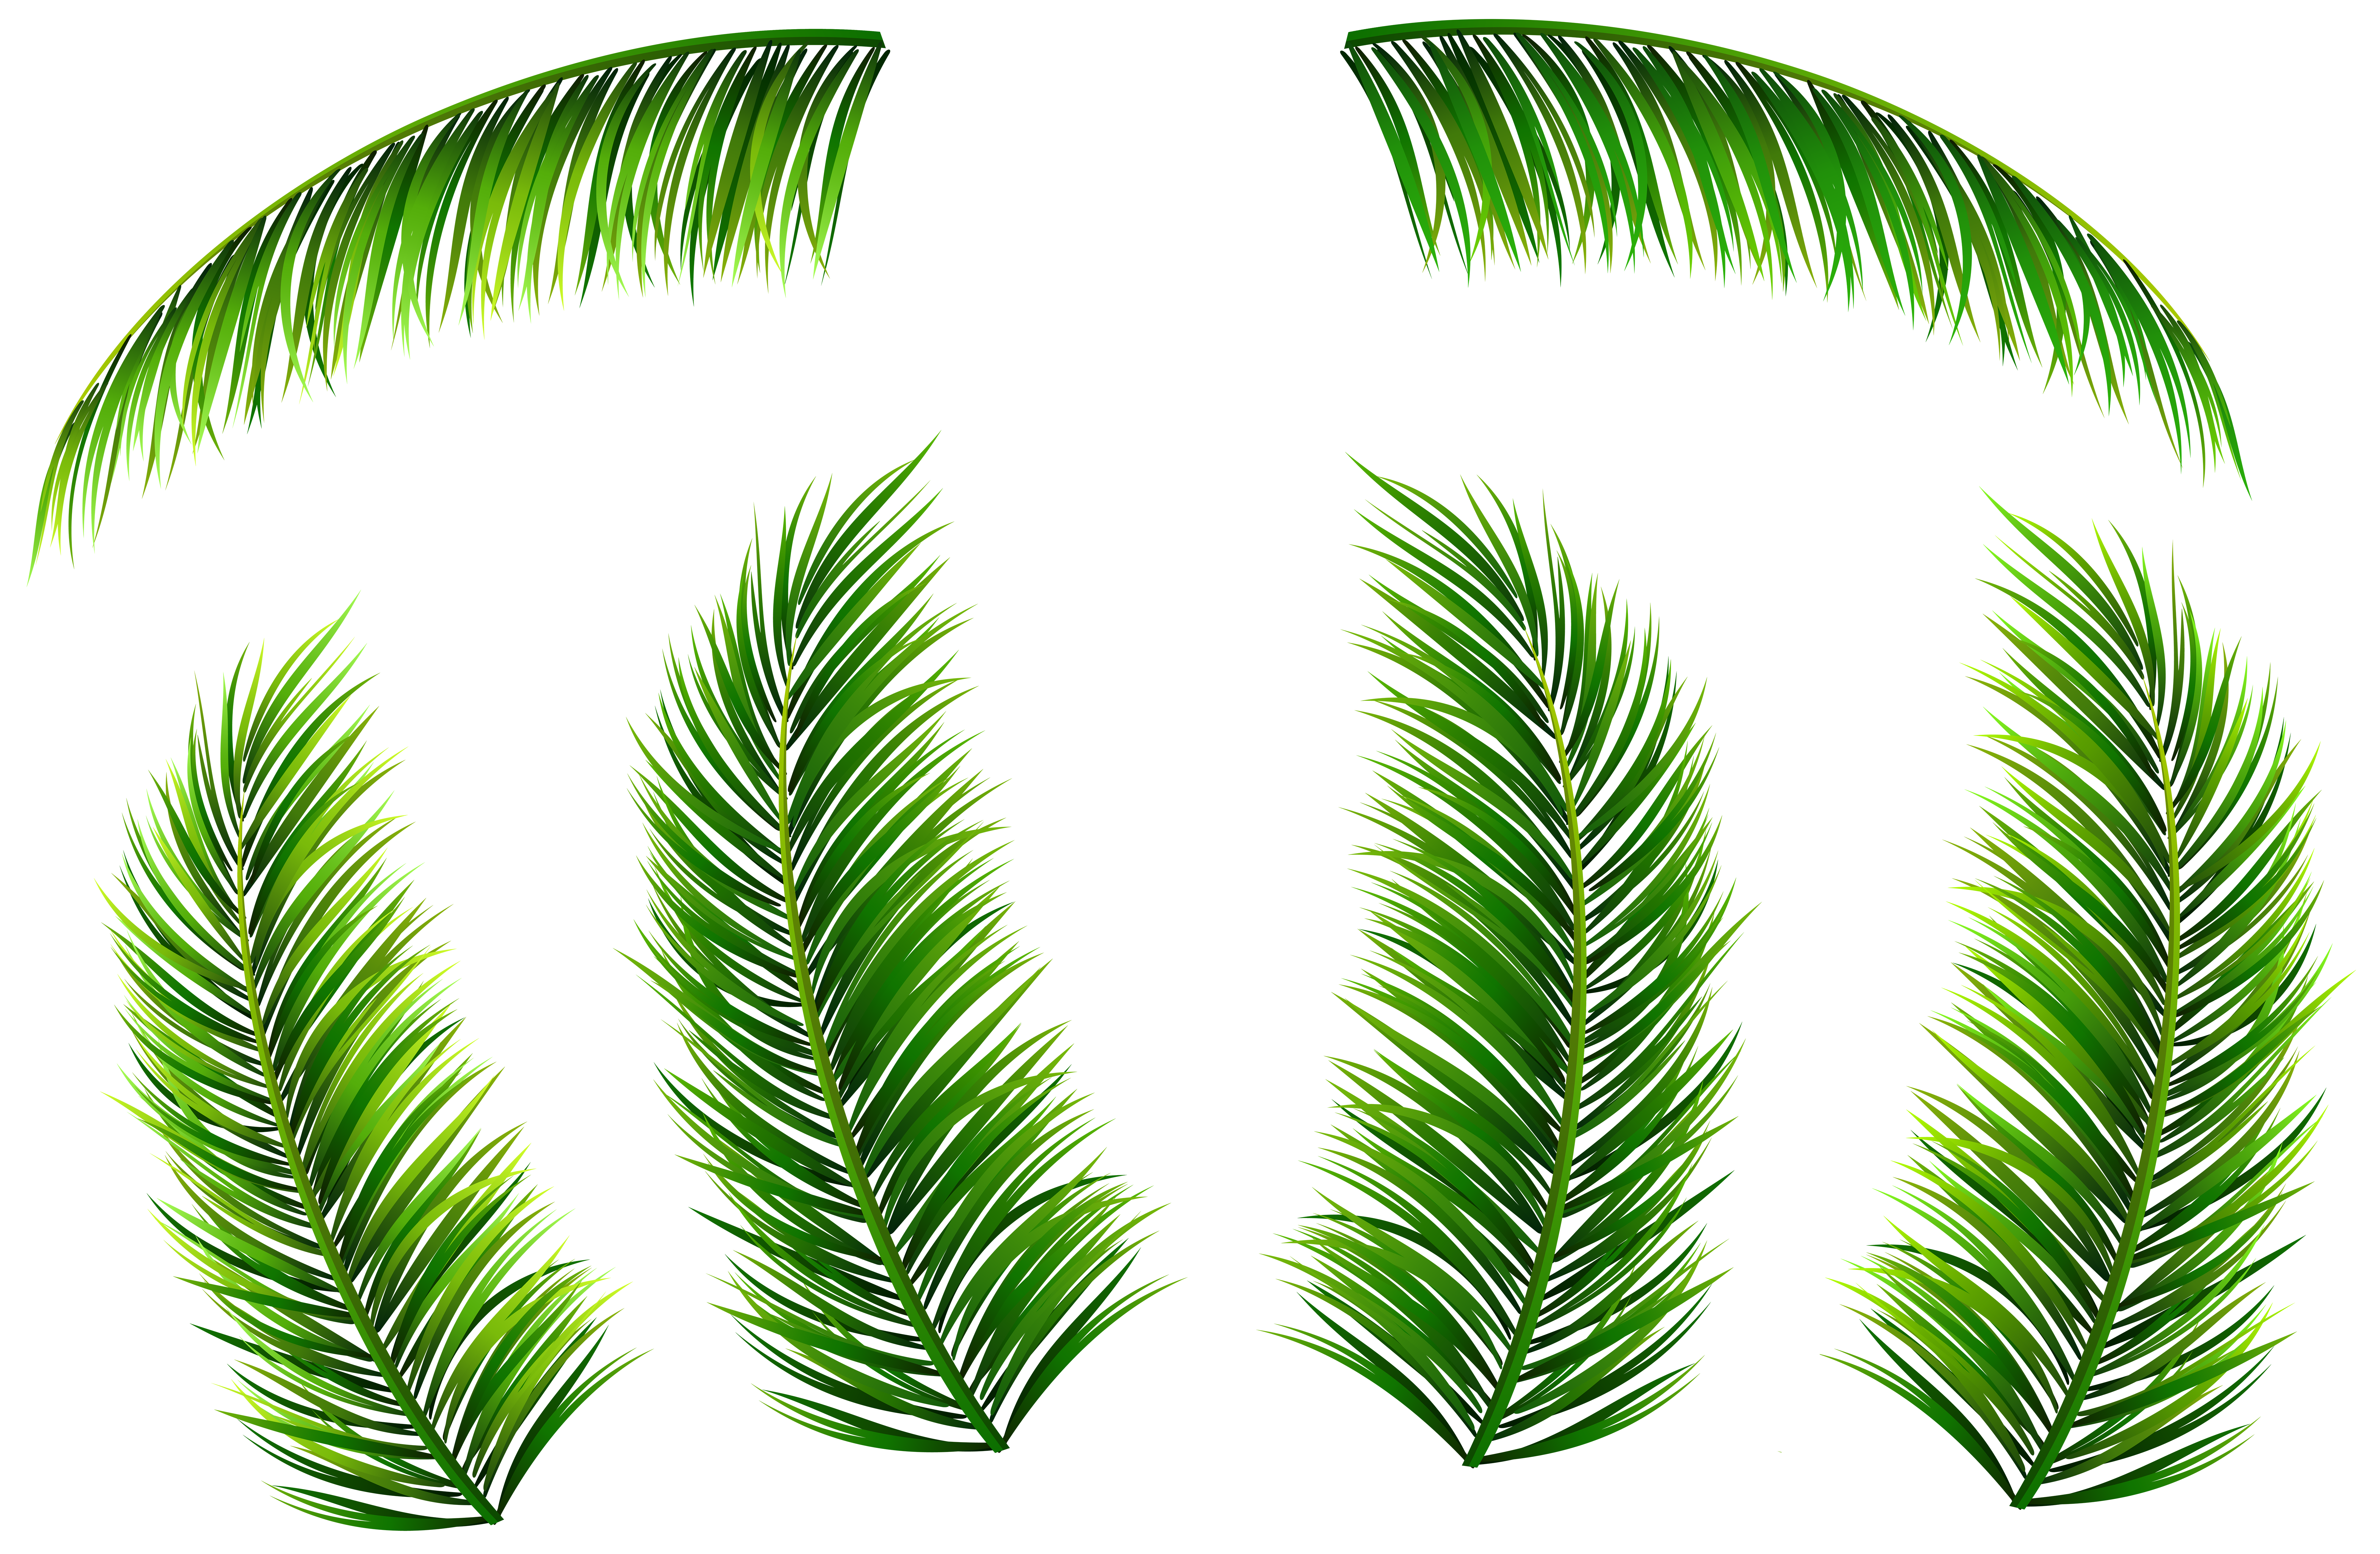 clip library Png clip art image. Leaves clipart palm leaves.